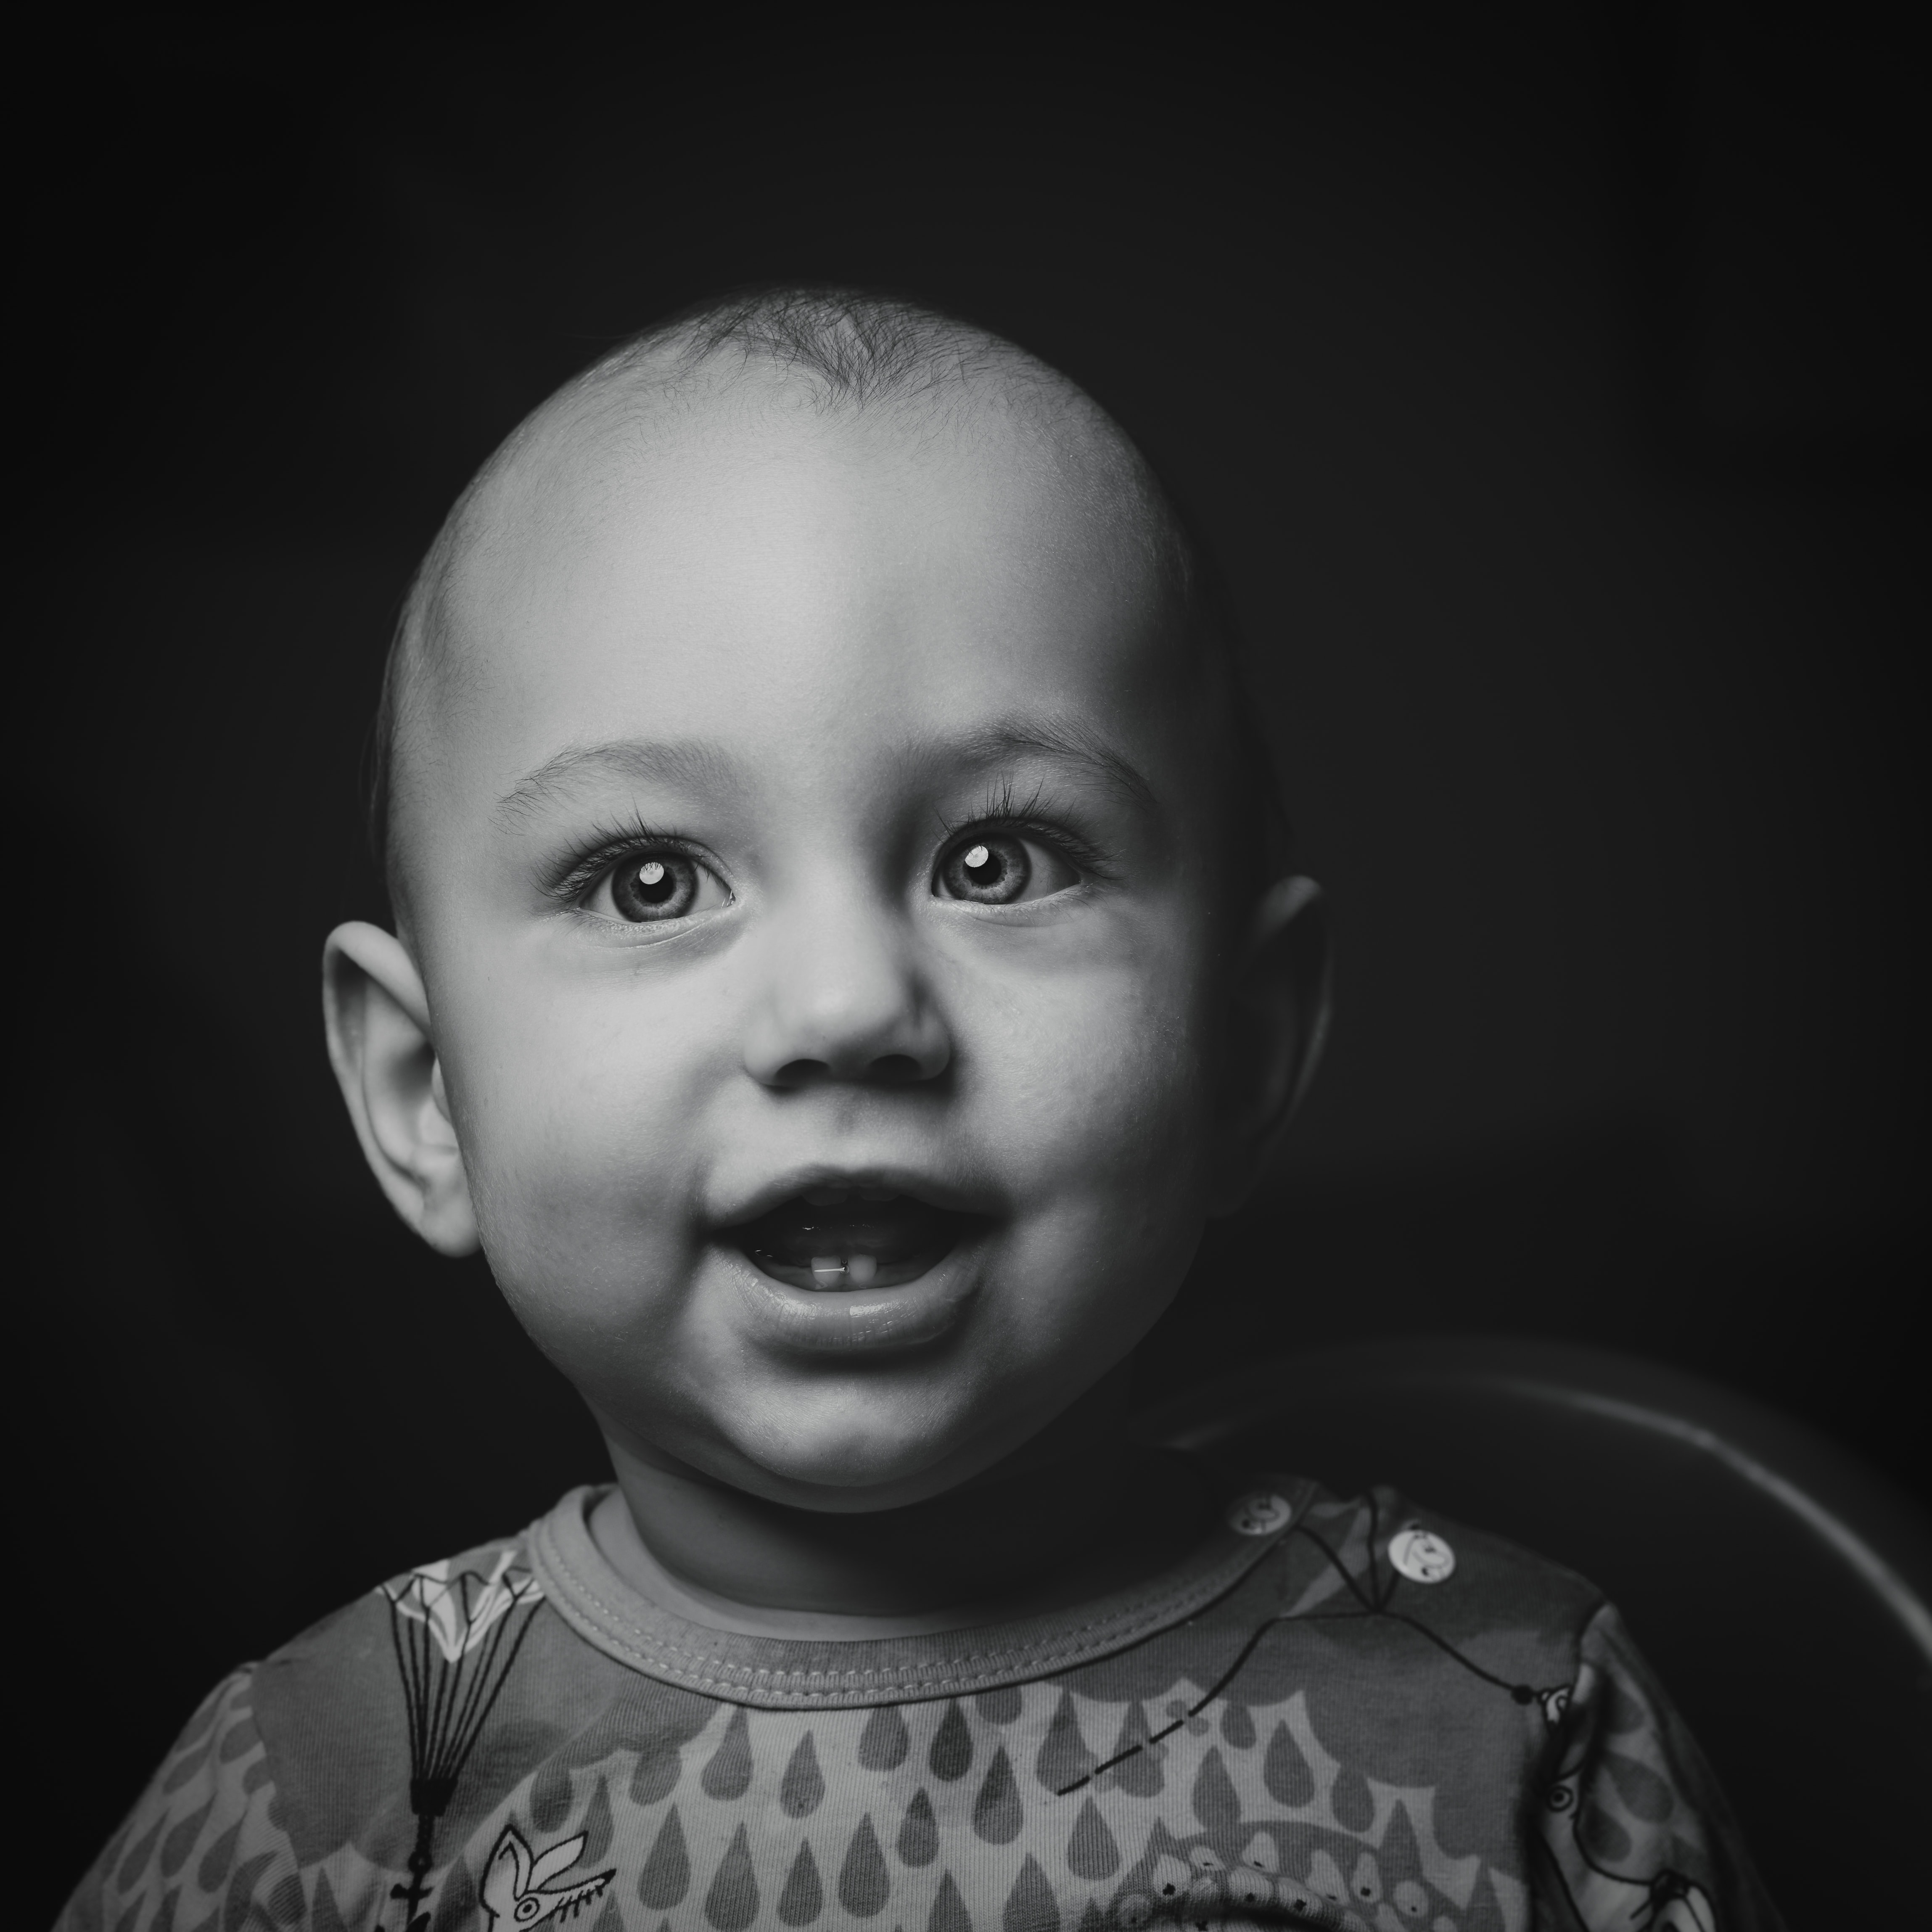 Black and white shot of baby's face without hair in Borås